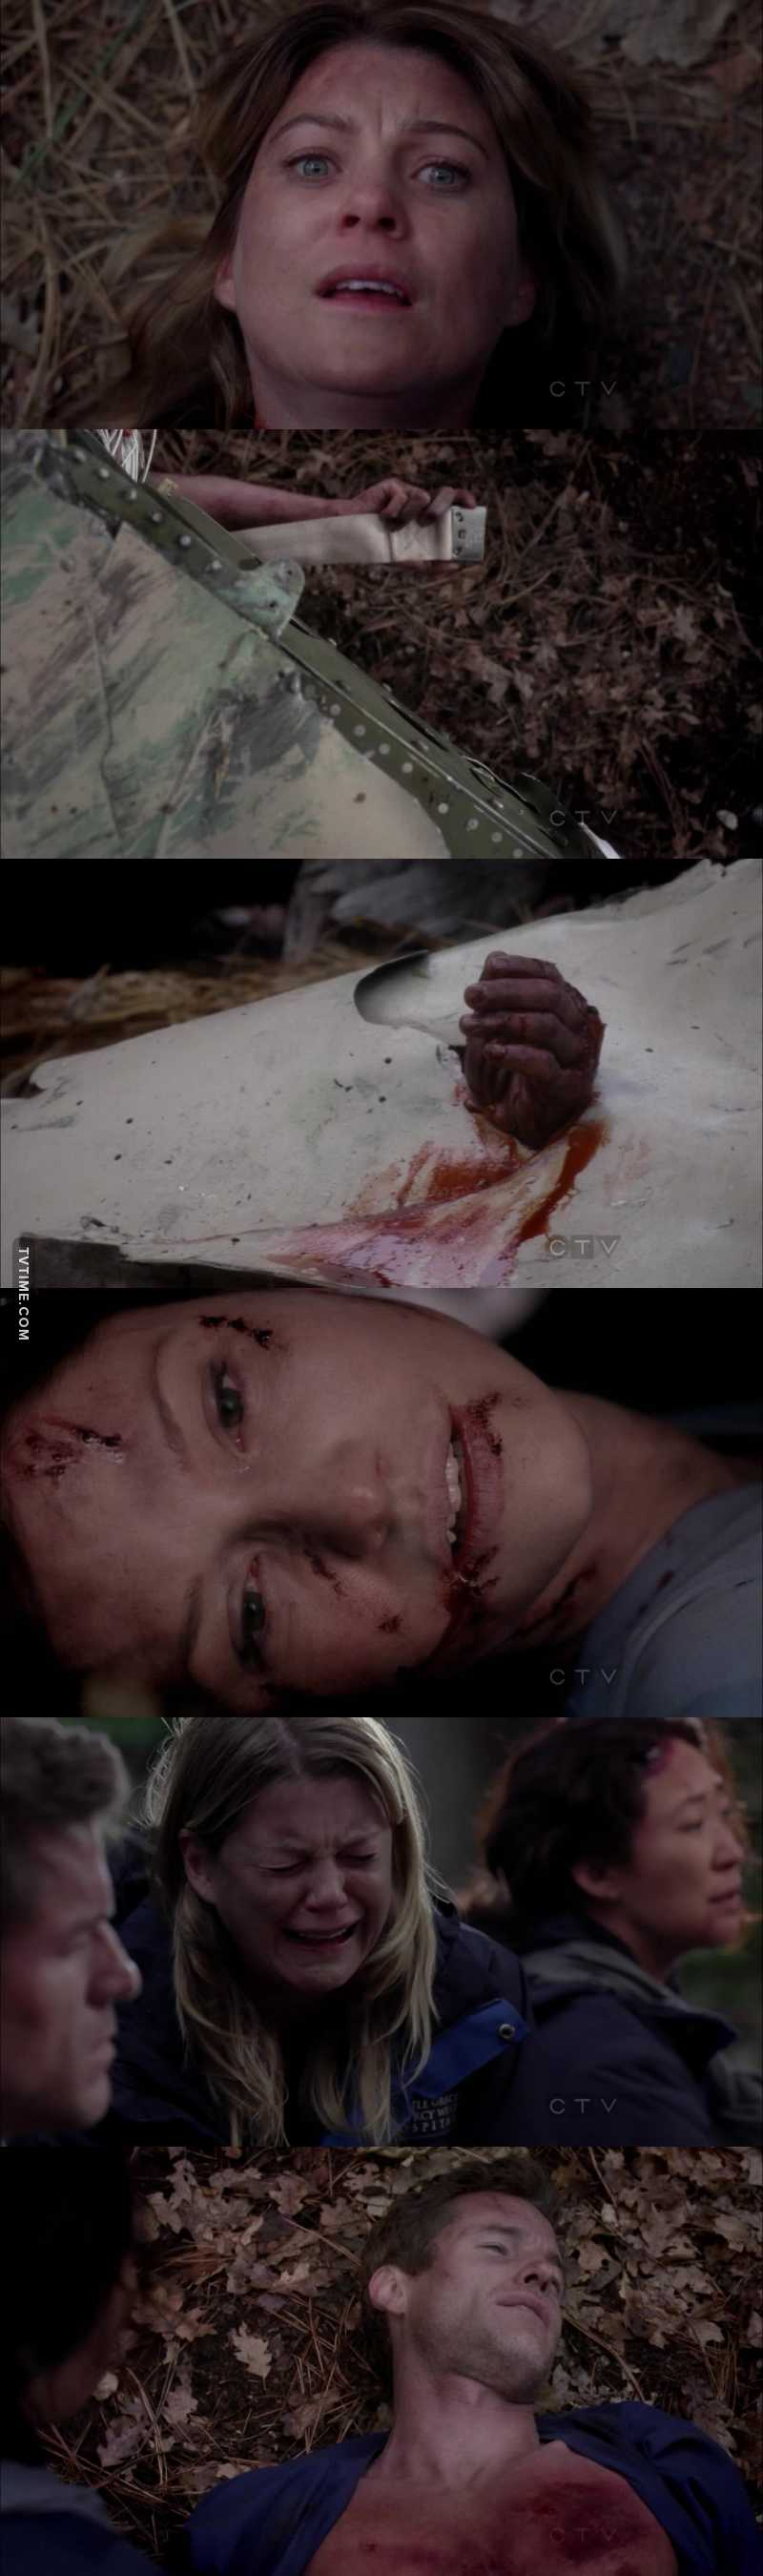 one of the hardest episodes to ever watch in grey's anatomy history